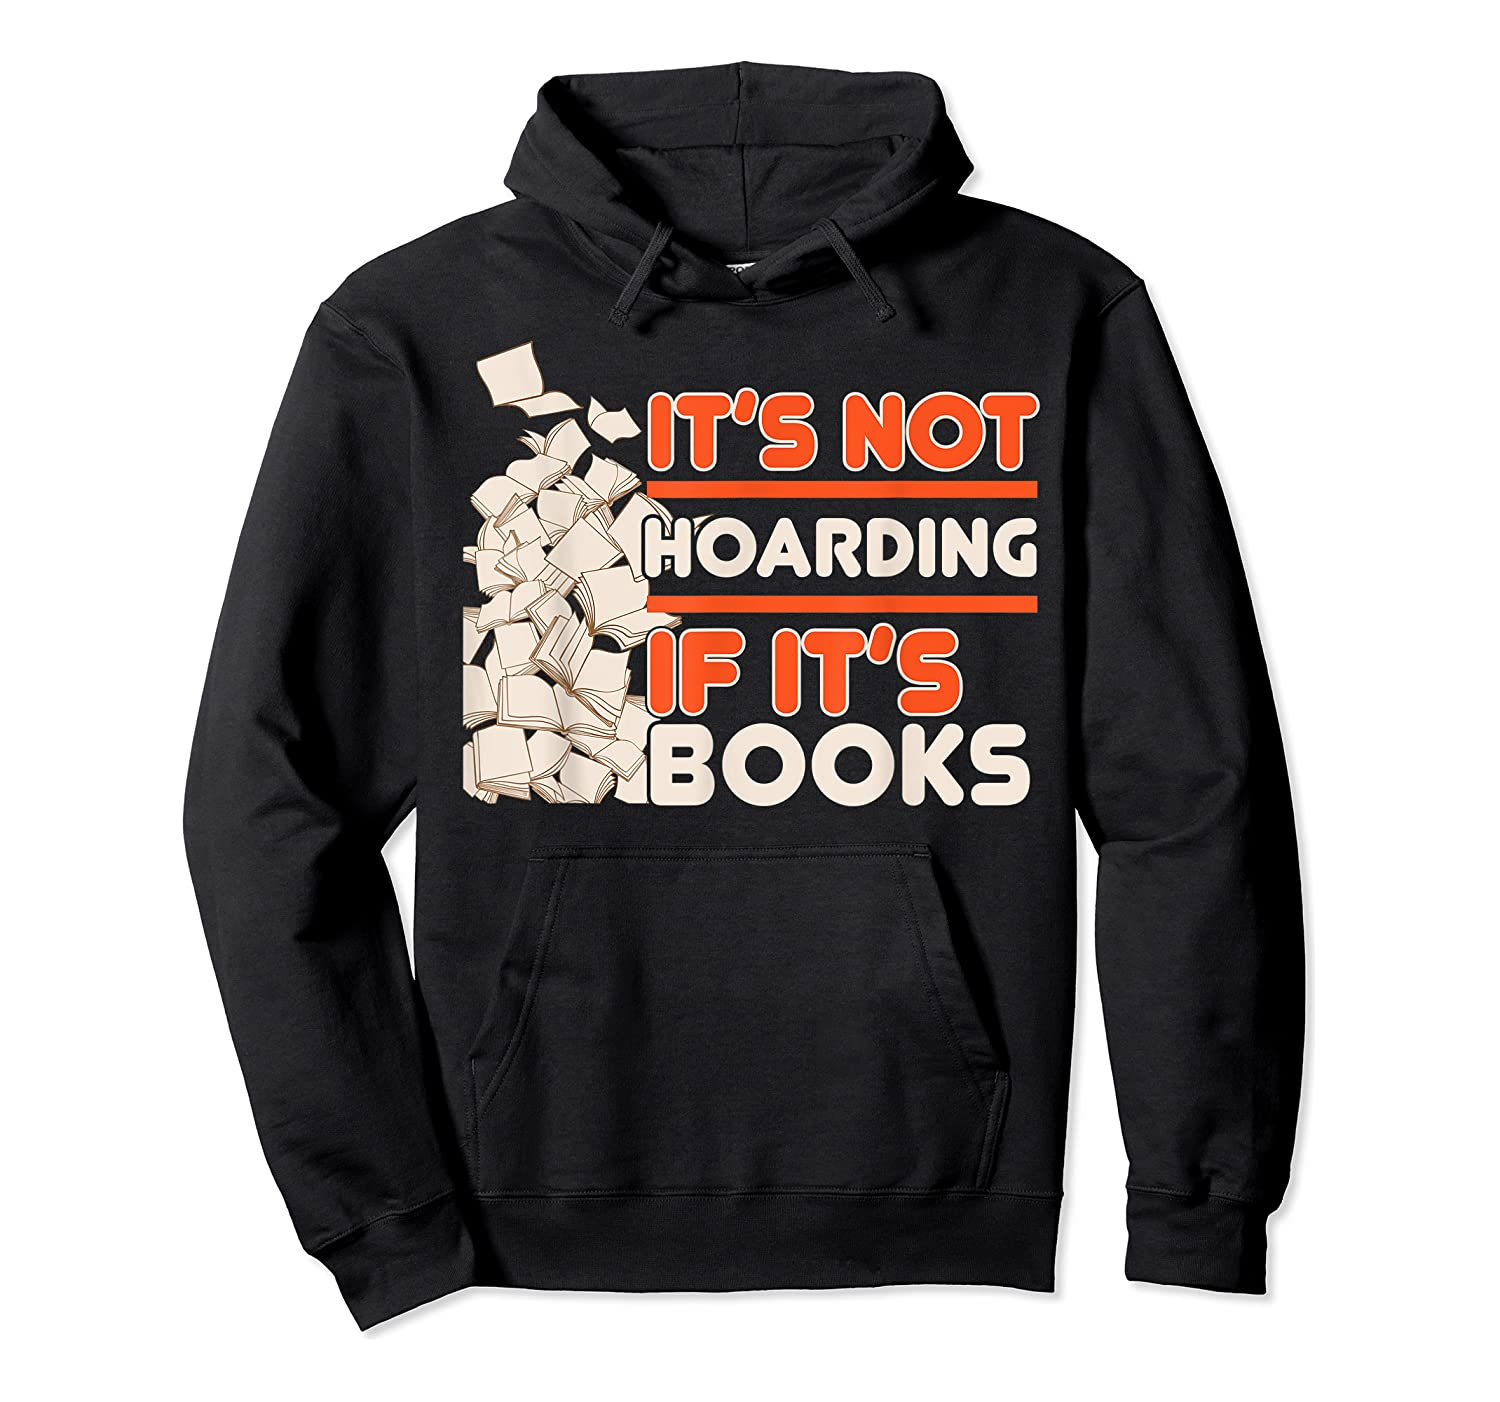 Reading It's Not Hoarding If It's Books Gifts Shirts Unisex Pullover Hoodie